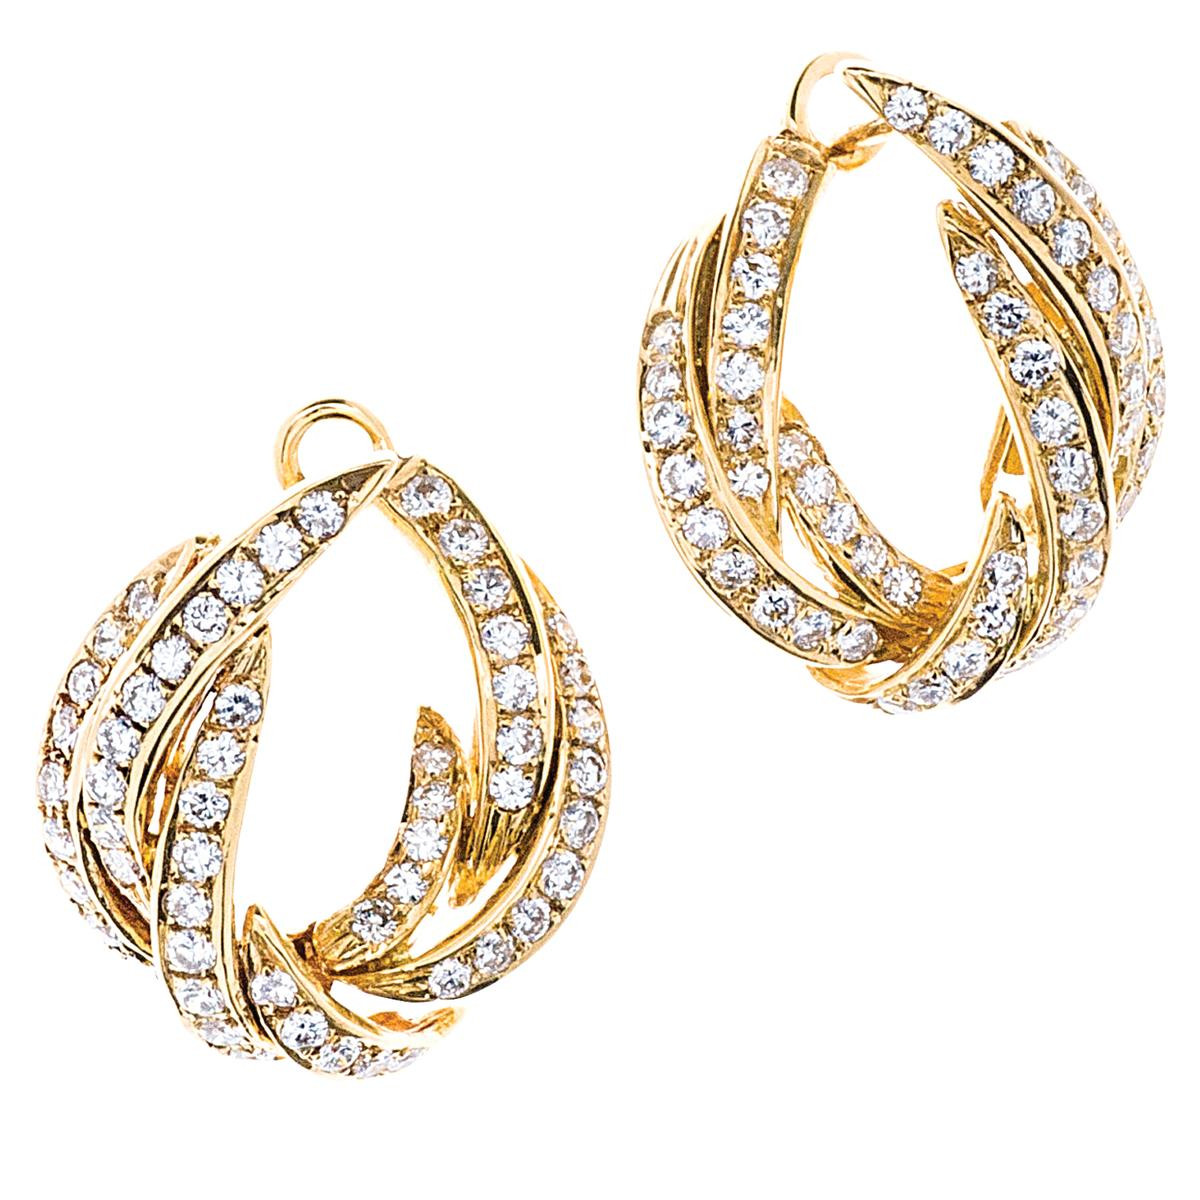 Allan Adler 1.57 CTW Diamond Twist Swirl Hoop Earrings